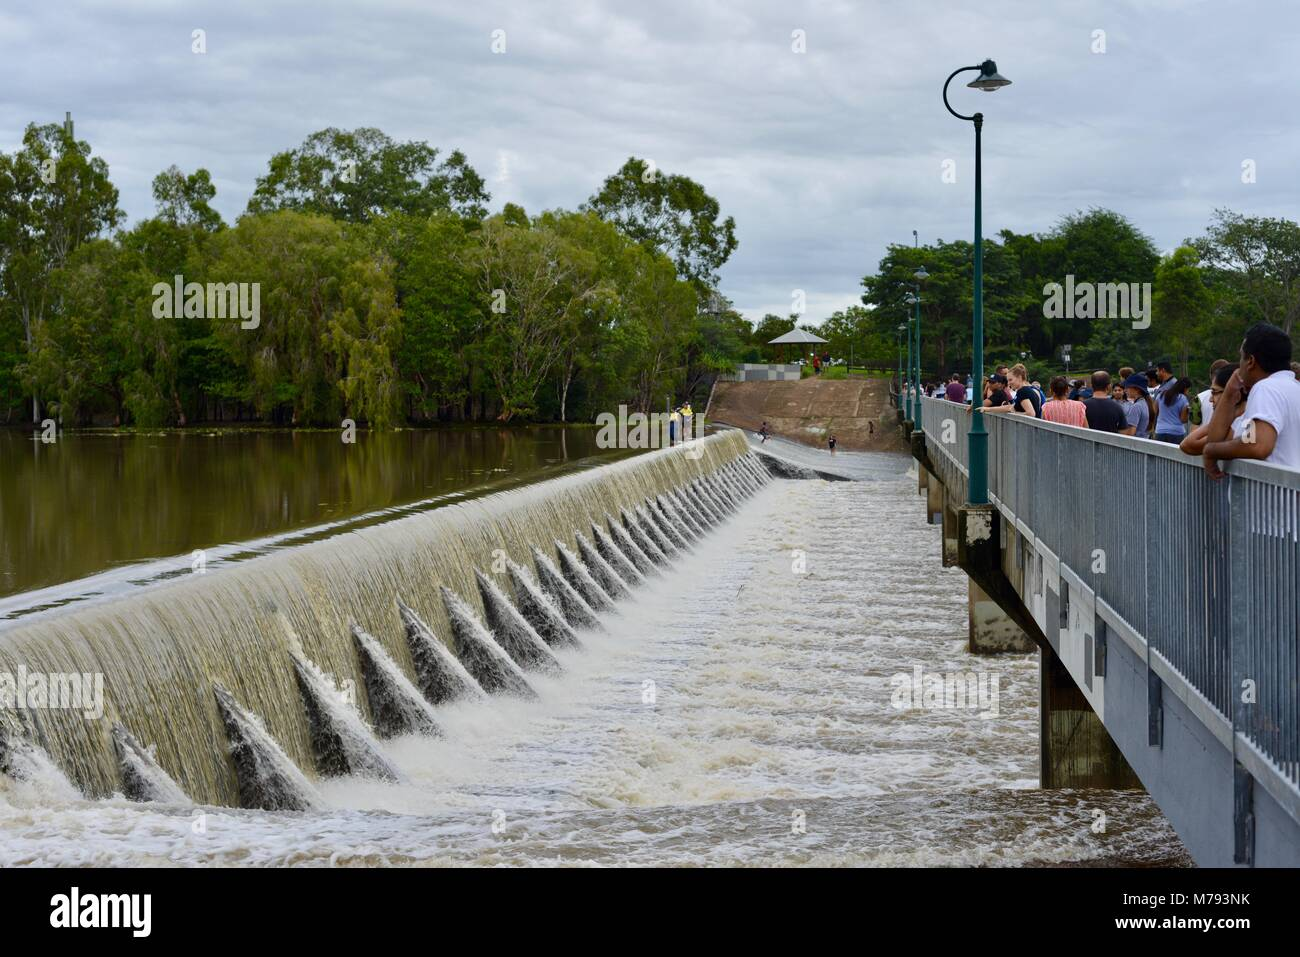 Crowds of people come to see water cascading over Aplins weir after storms and heavy rainfall, Aplins weir, Townsville, - Stock Image